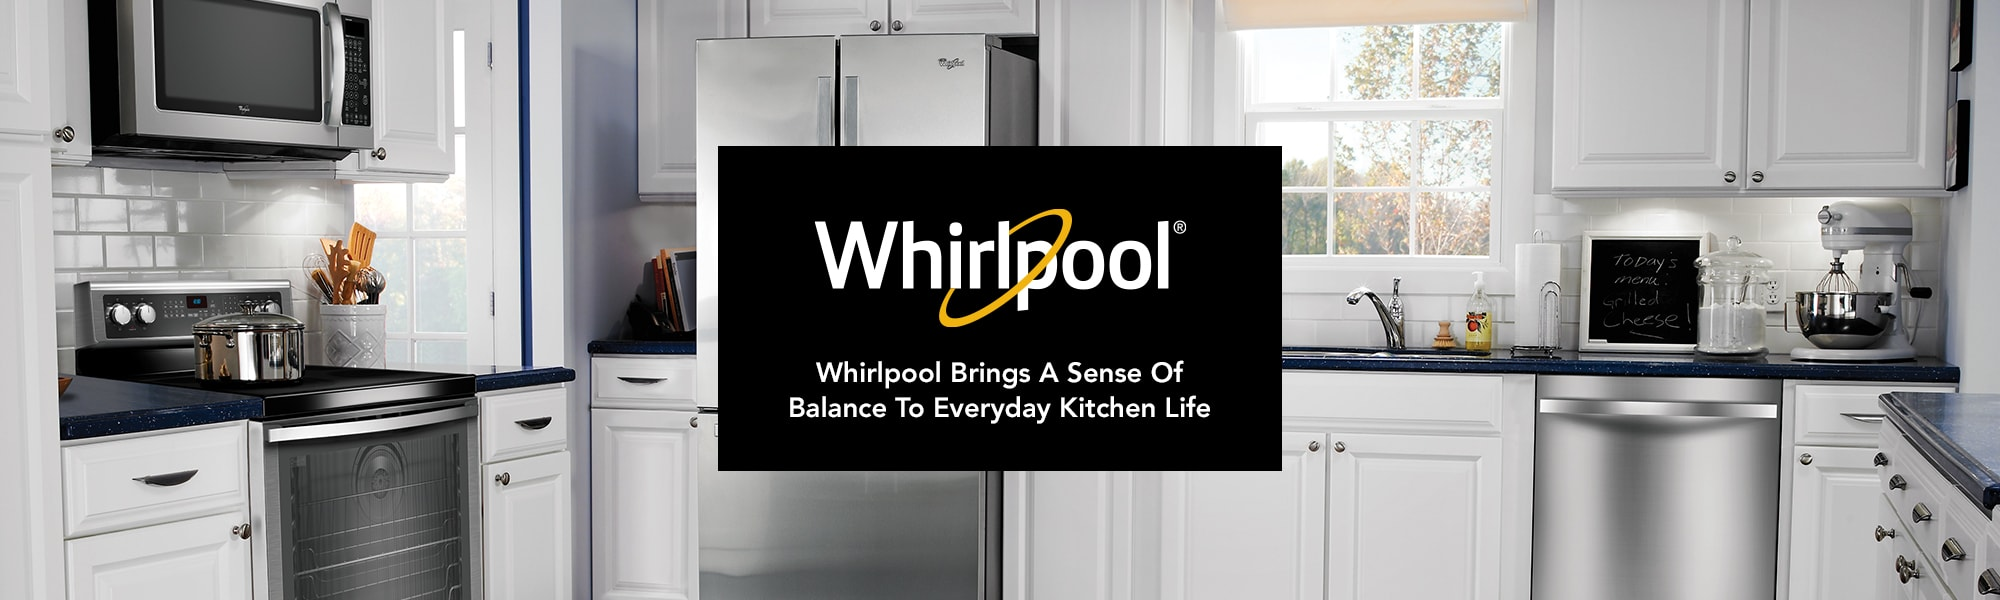 Whirlpool Brings a sense of balance to everyday kitchen life